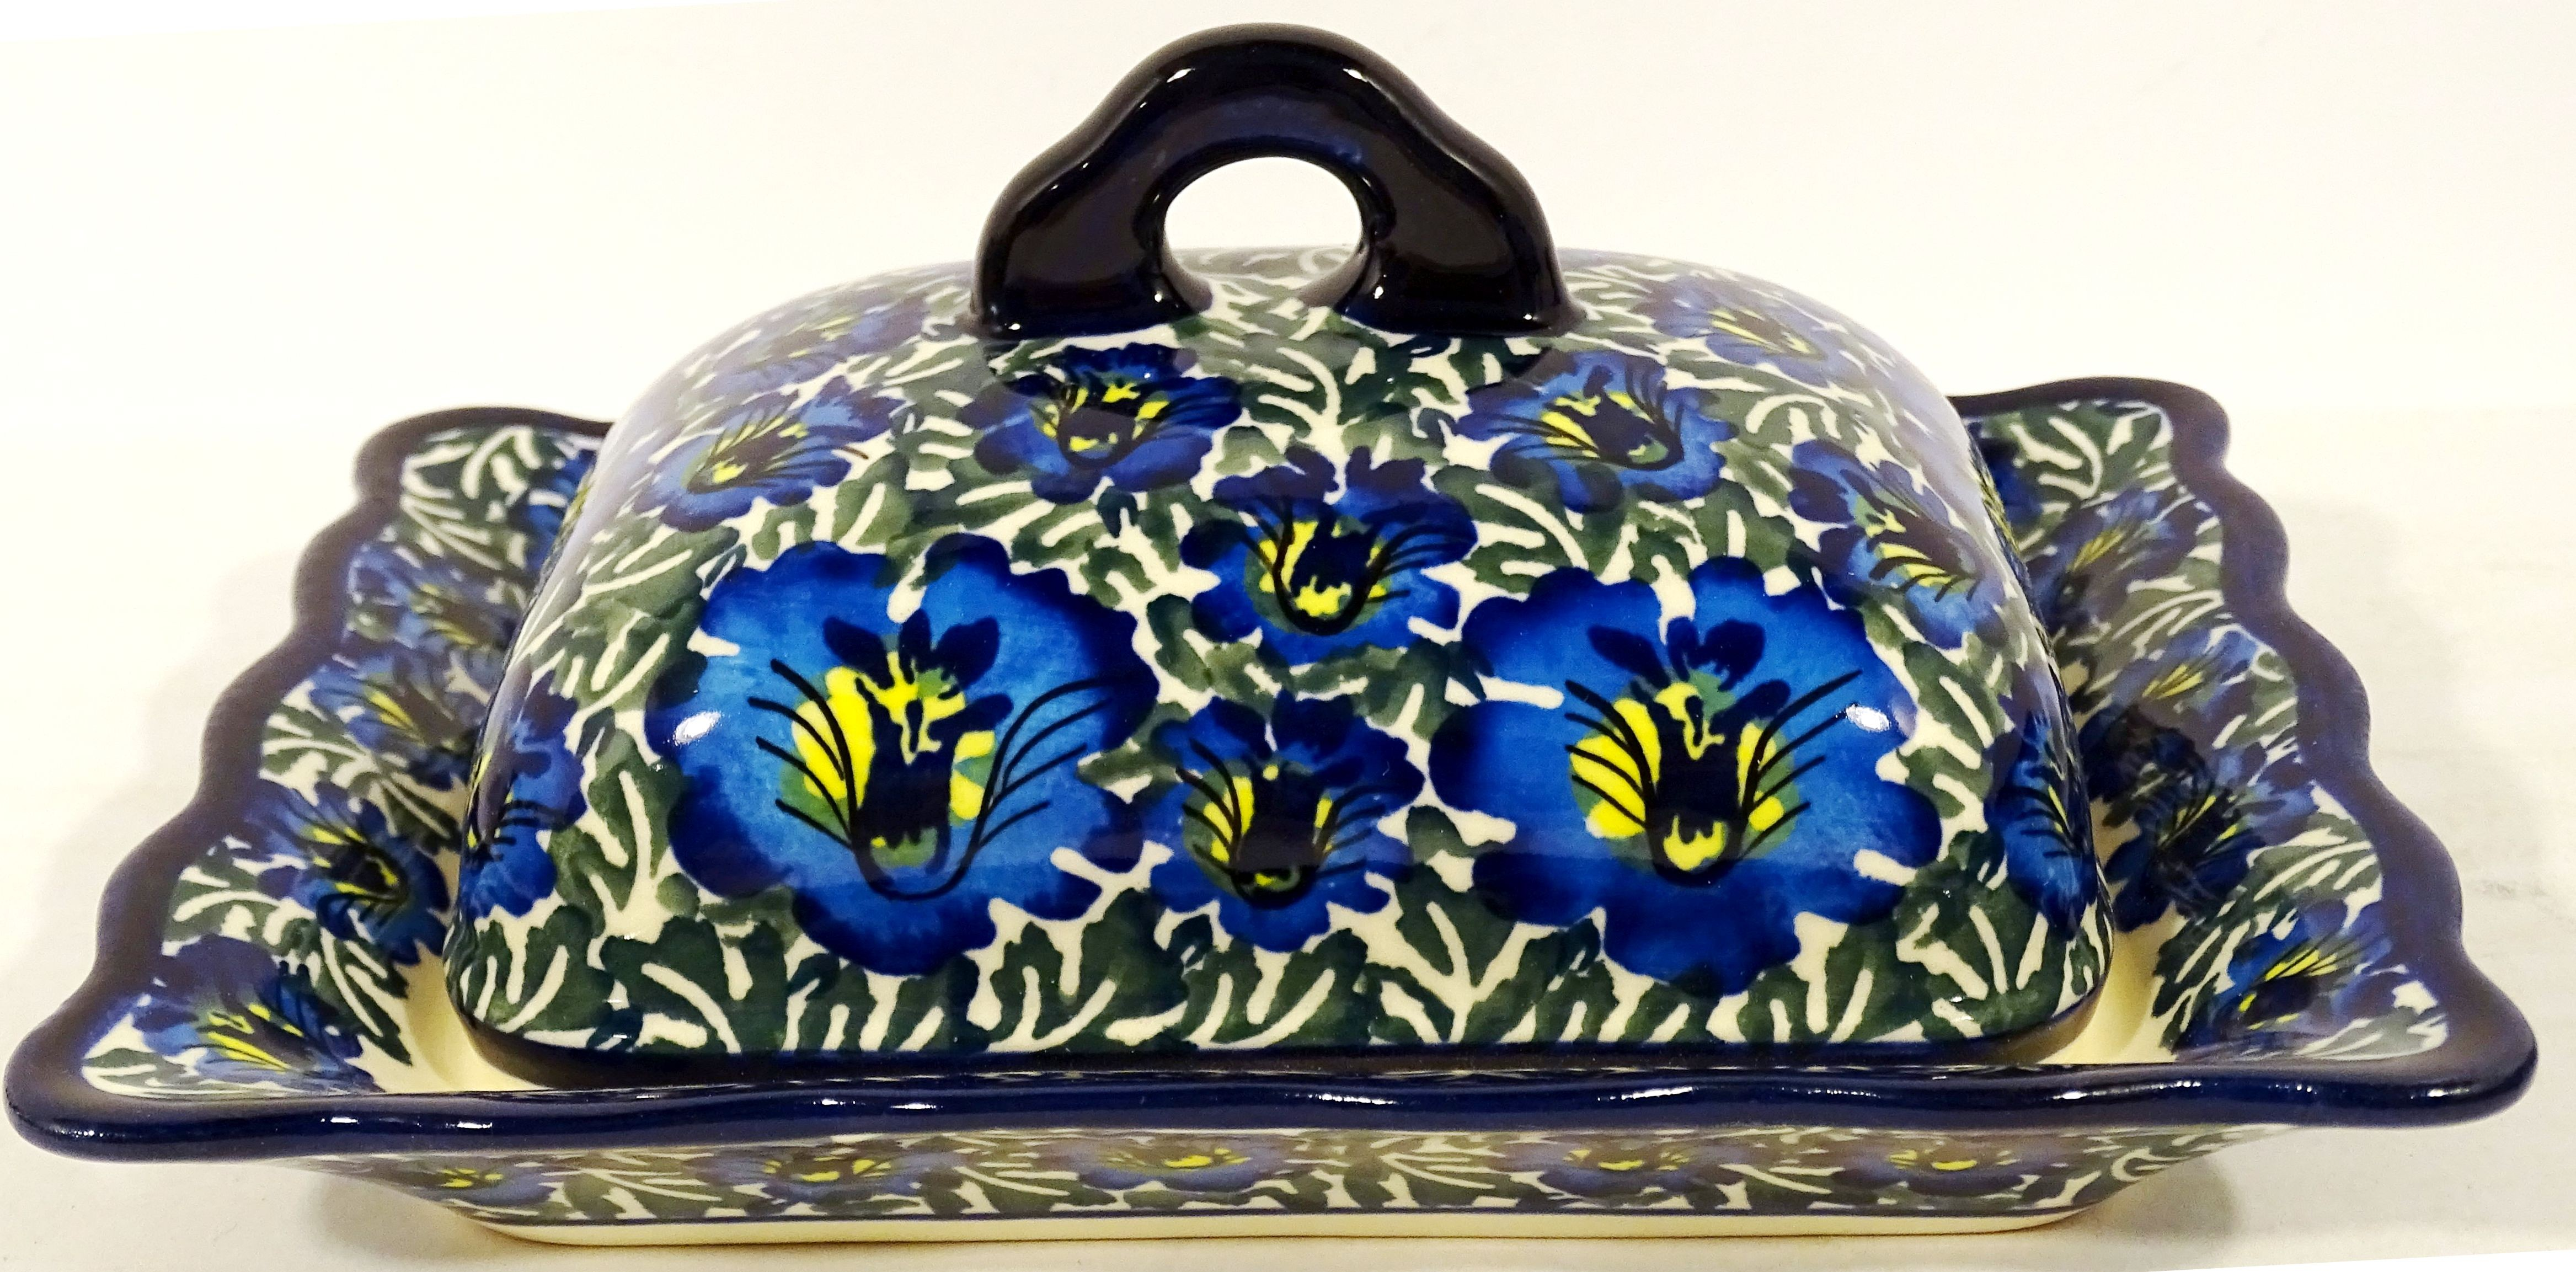 Pottery Avenue Fancy Covered Butter Dish - 1568-313AR Blue Lagoon